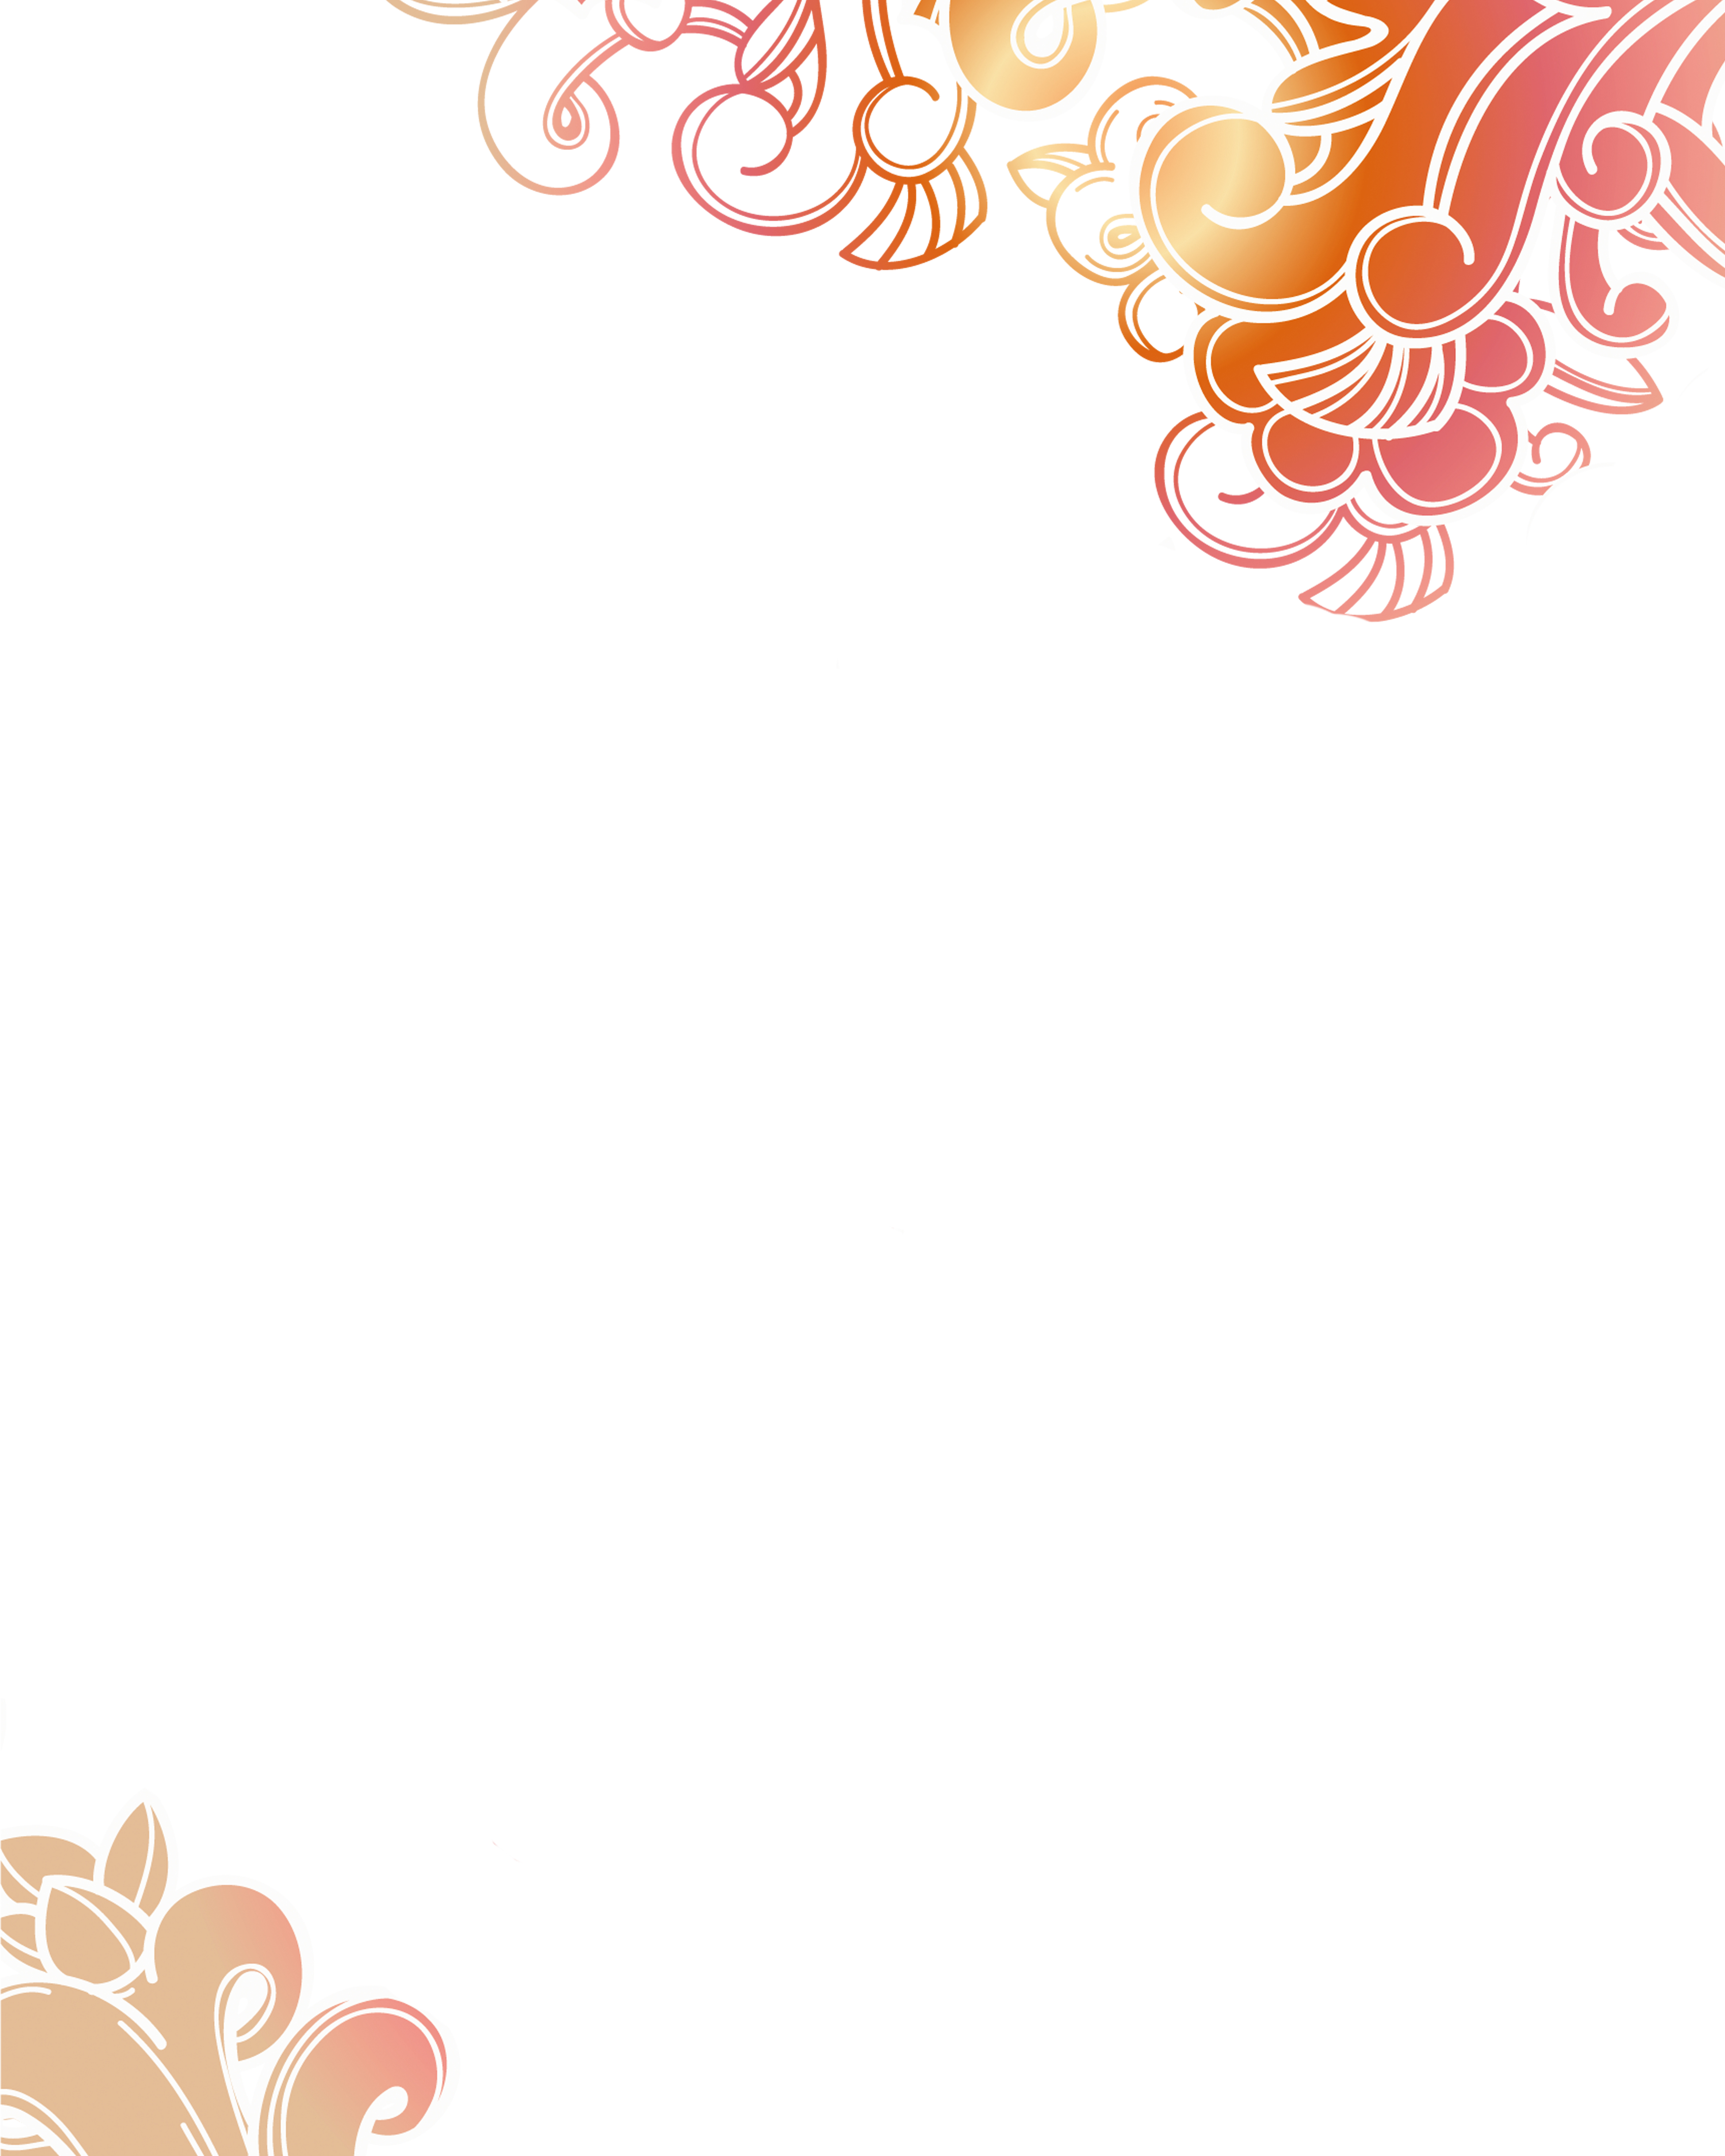 wedding welcome card poster background material wedding